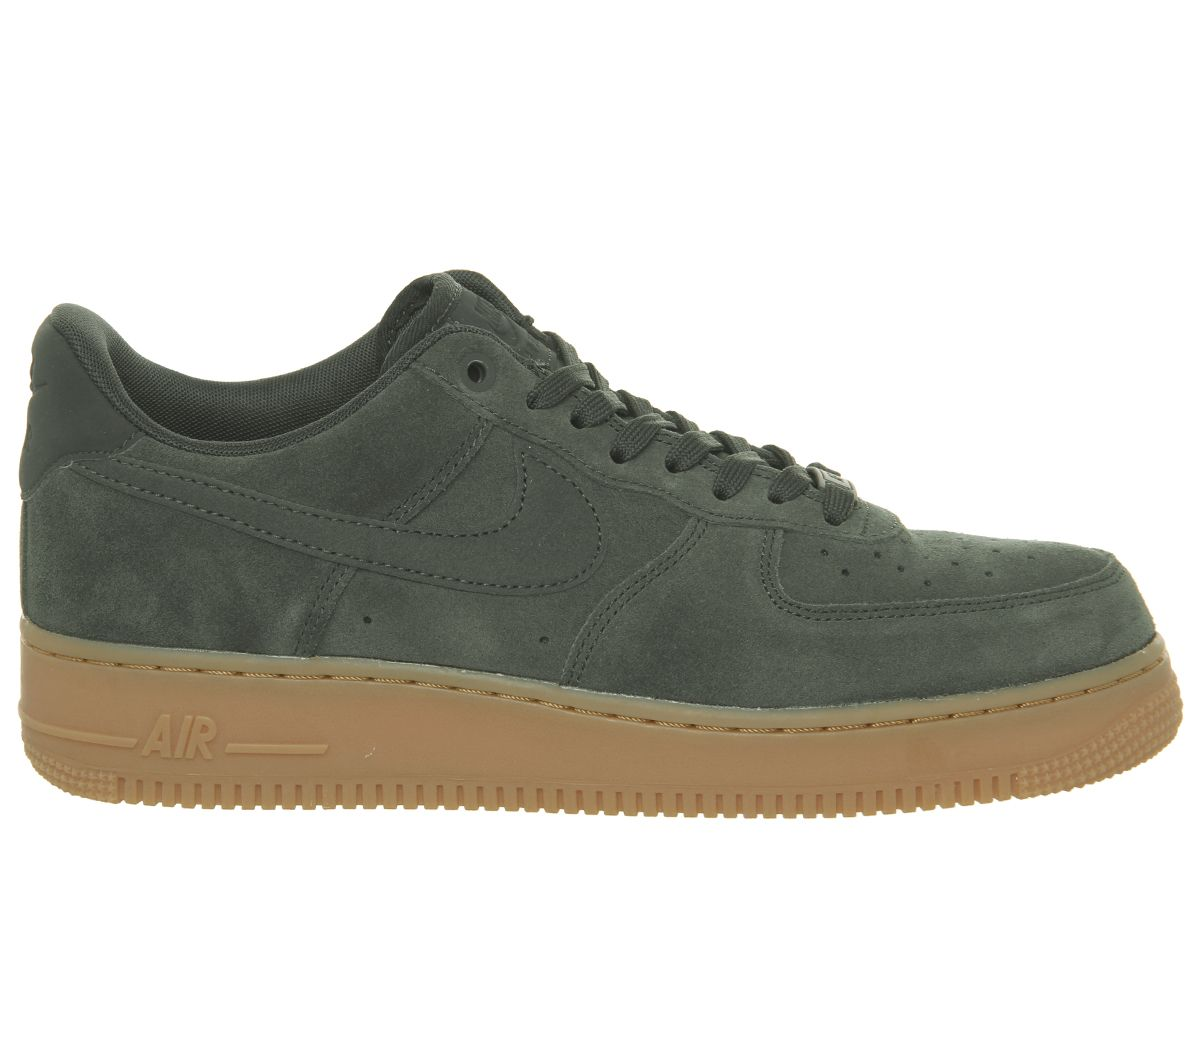 0dc7a8db60cc Nike Nike Air Force One Trainers Outdoor Green Suede Gum - His trainers